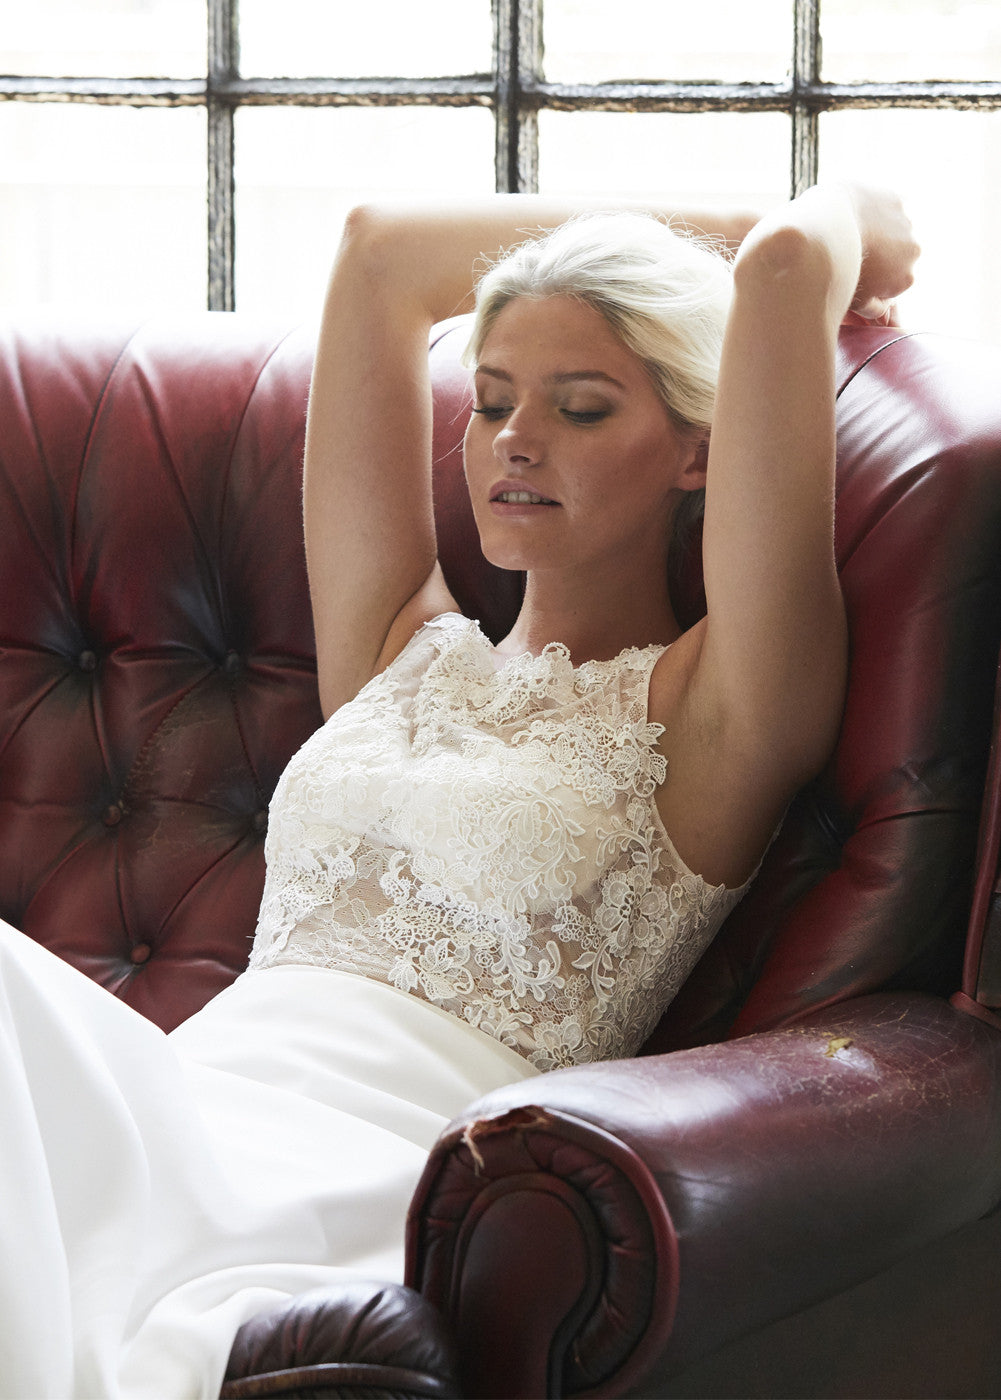 Chiffon Wedding Dress with a See-through Lace Bodice